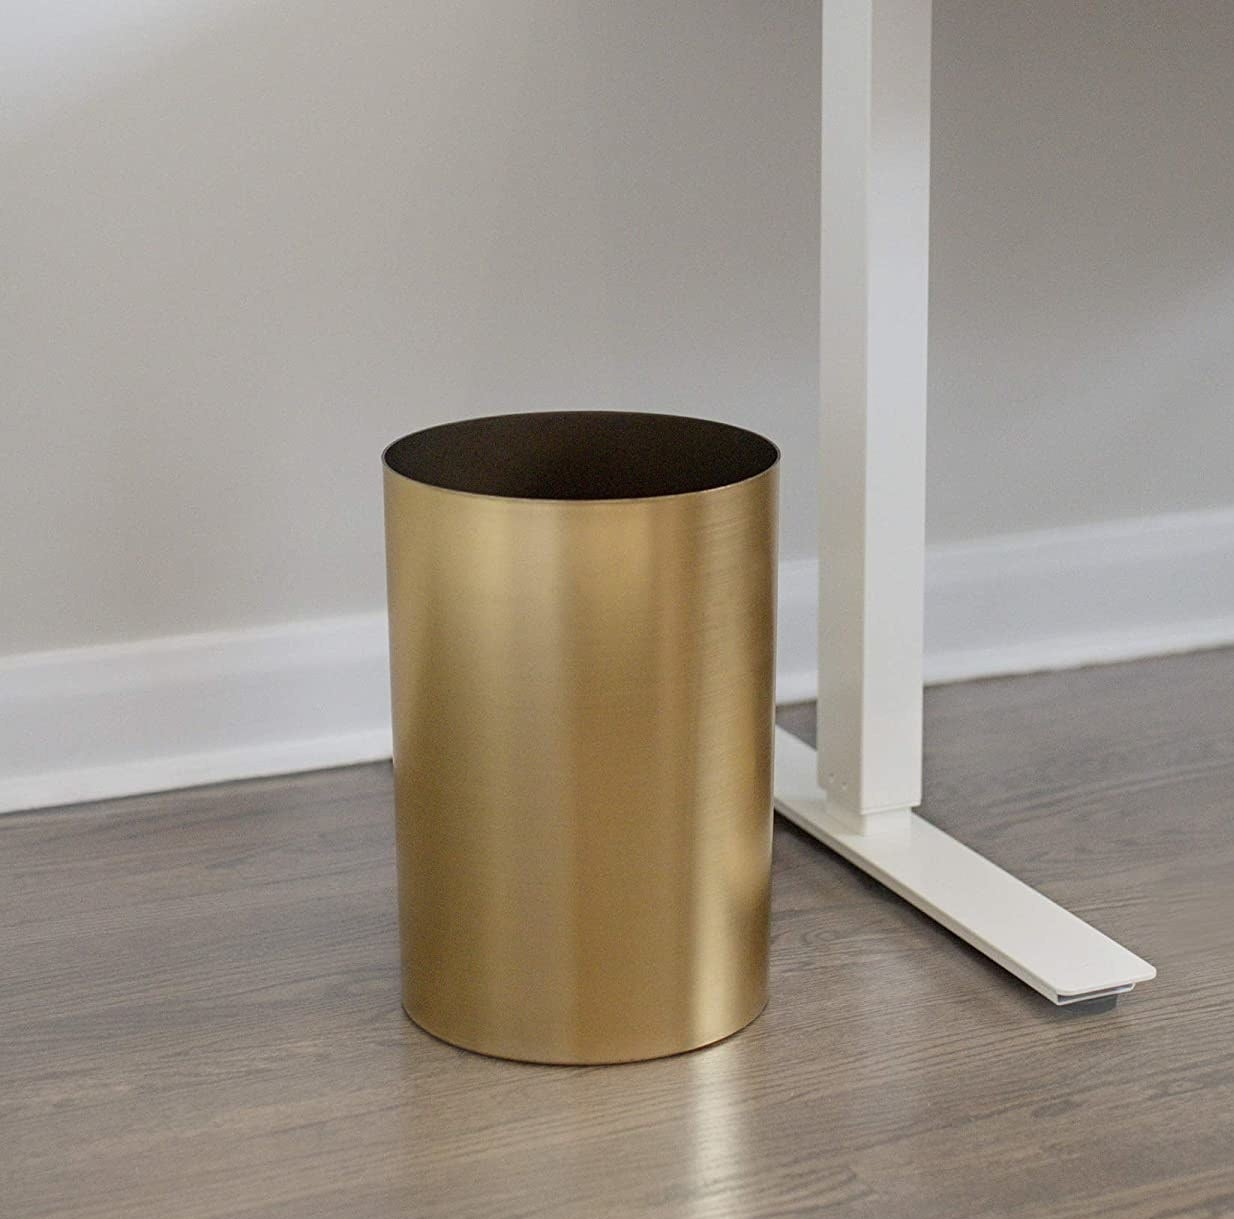 the trash can under a desk